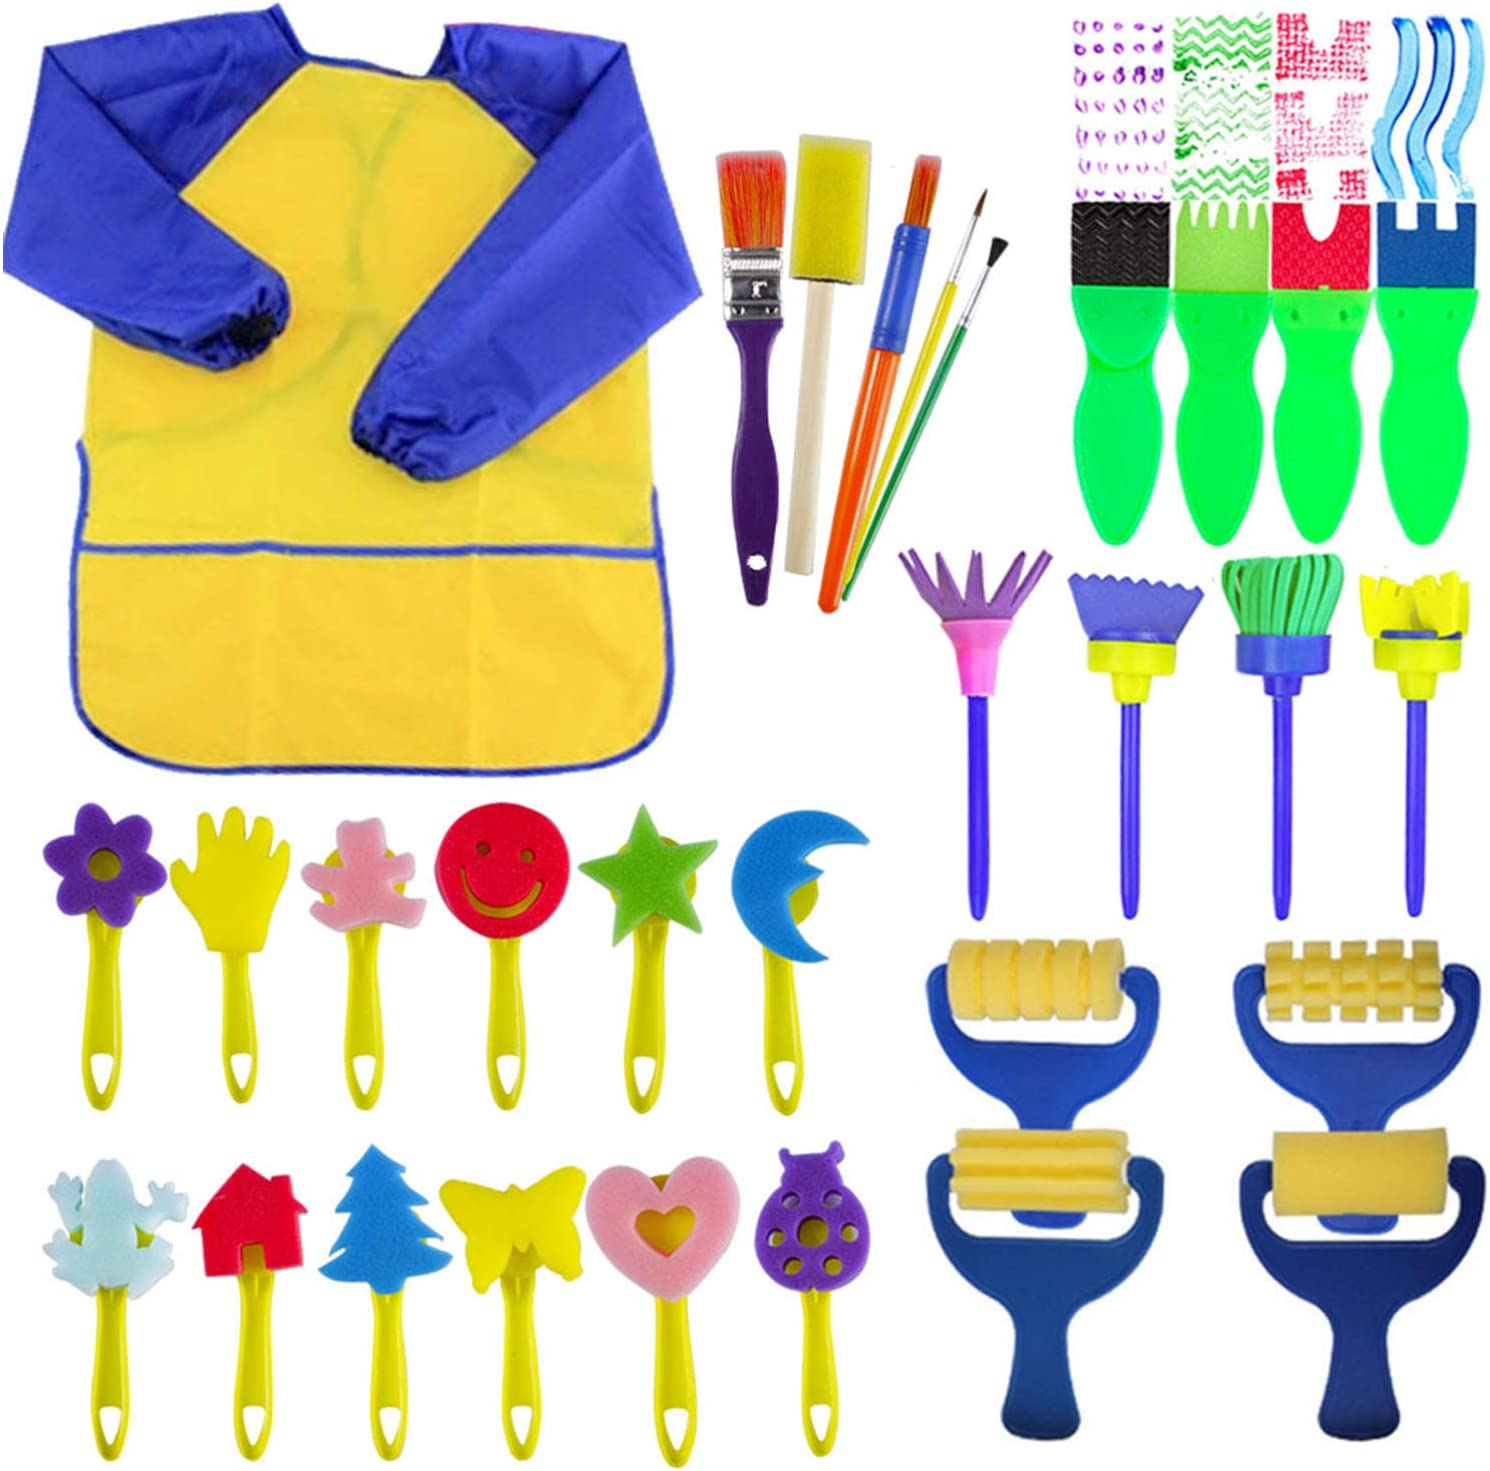 Sisenny Paint Sponges for Kids 27PCS Painting Brushes Kit for Toddlers Early DIY Learning Include Foam Brushes Art Crafts Sponge Brush Flower Pattern Brush